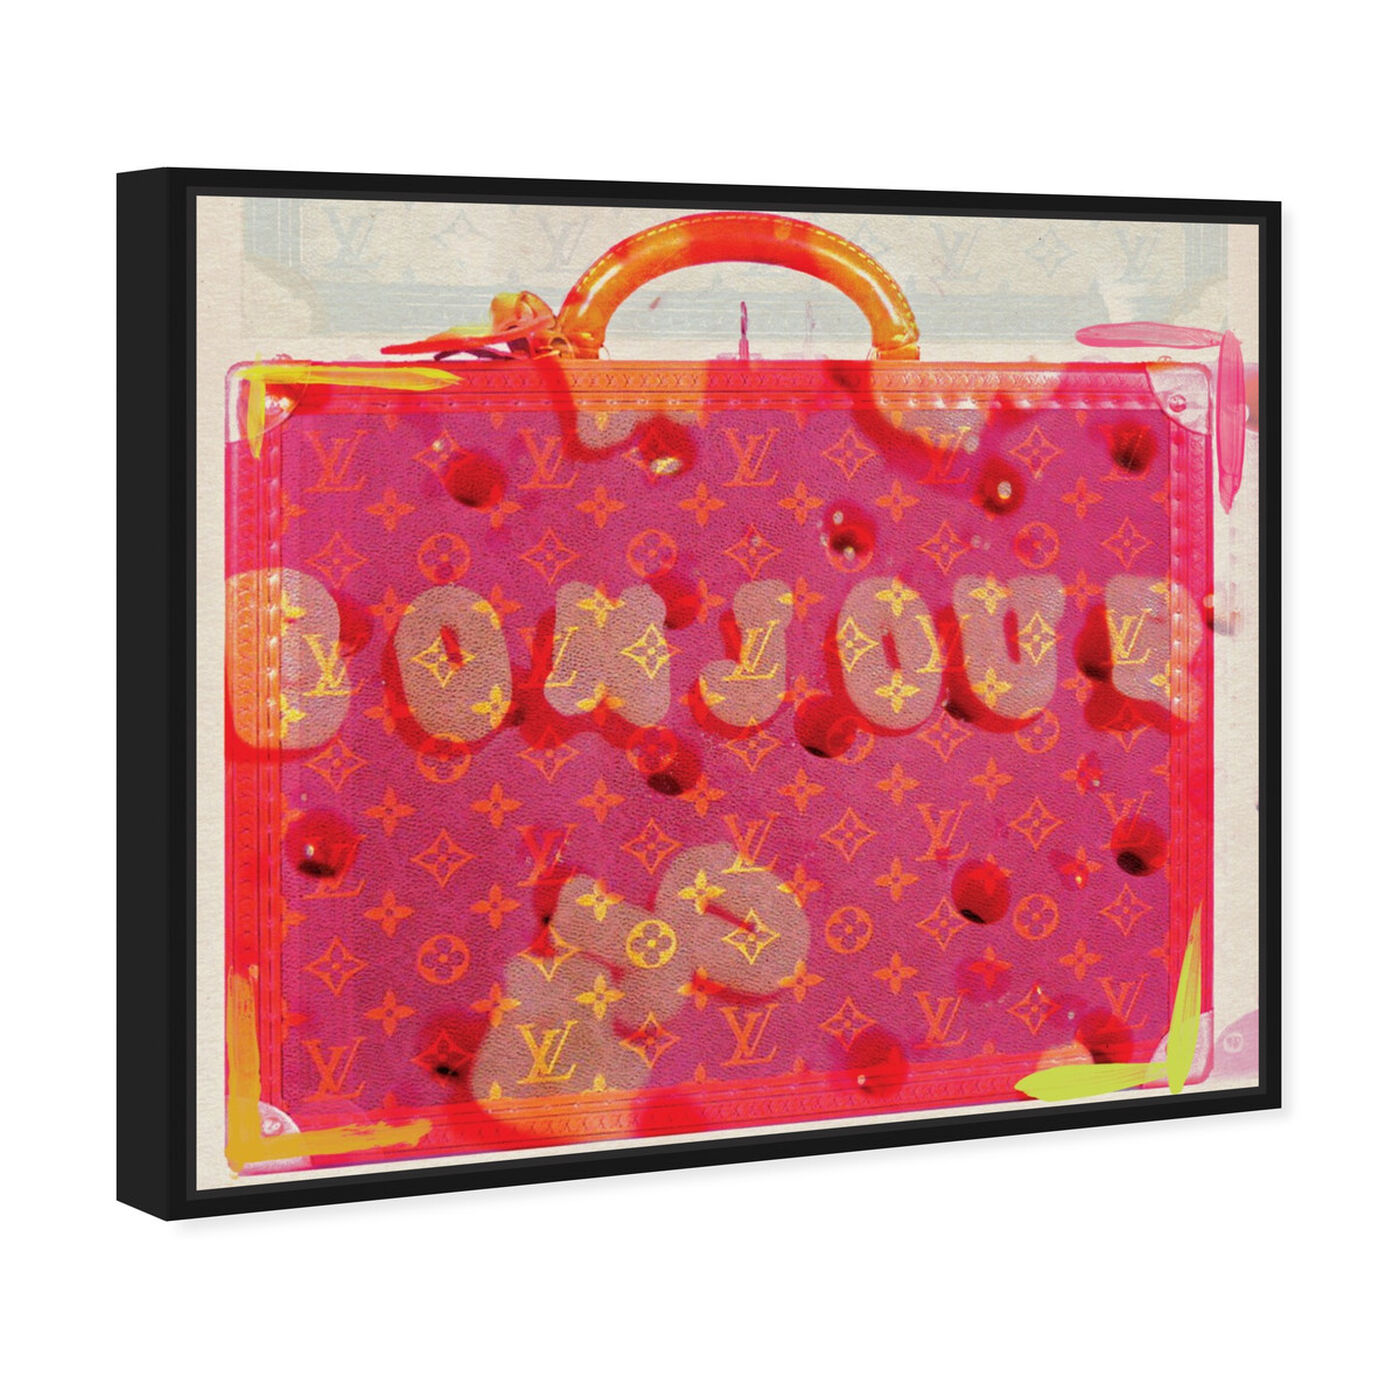 Angled view of Bonjour featuring fashion and glam and handbags art.